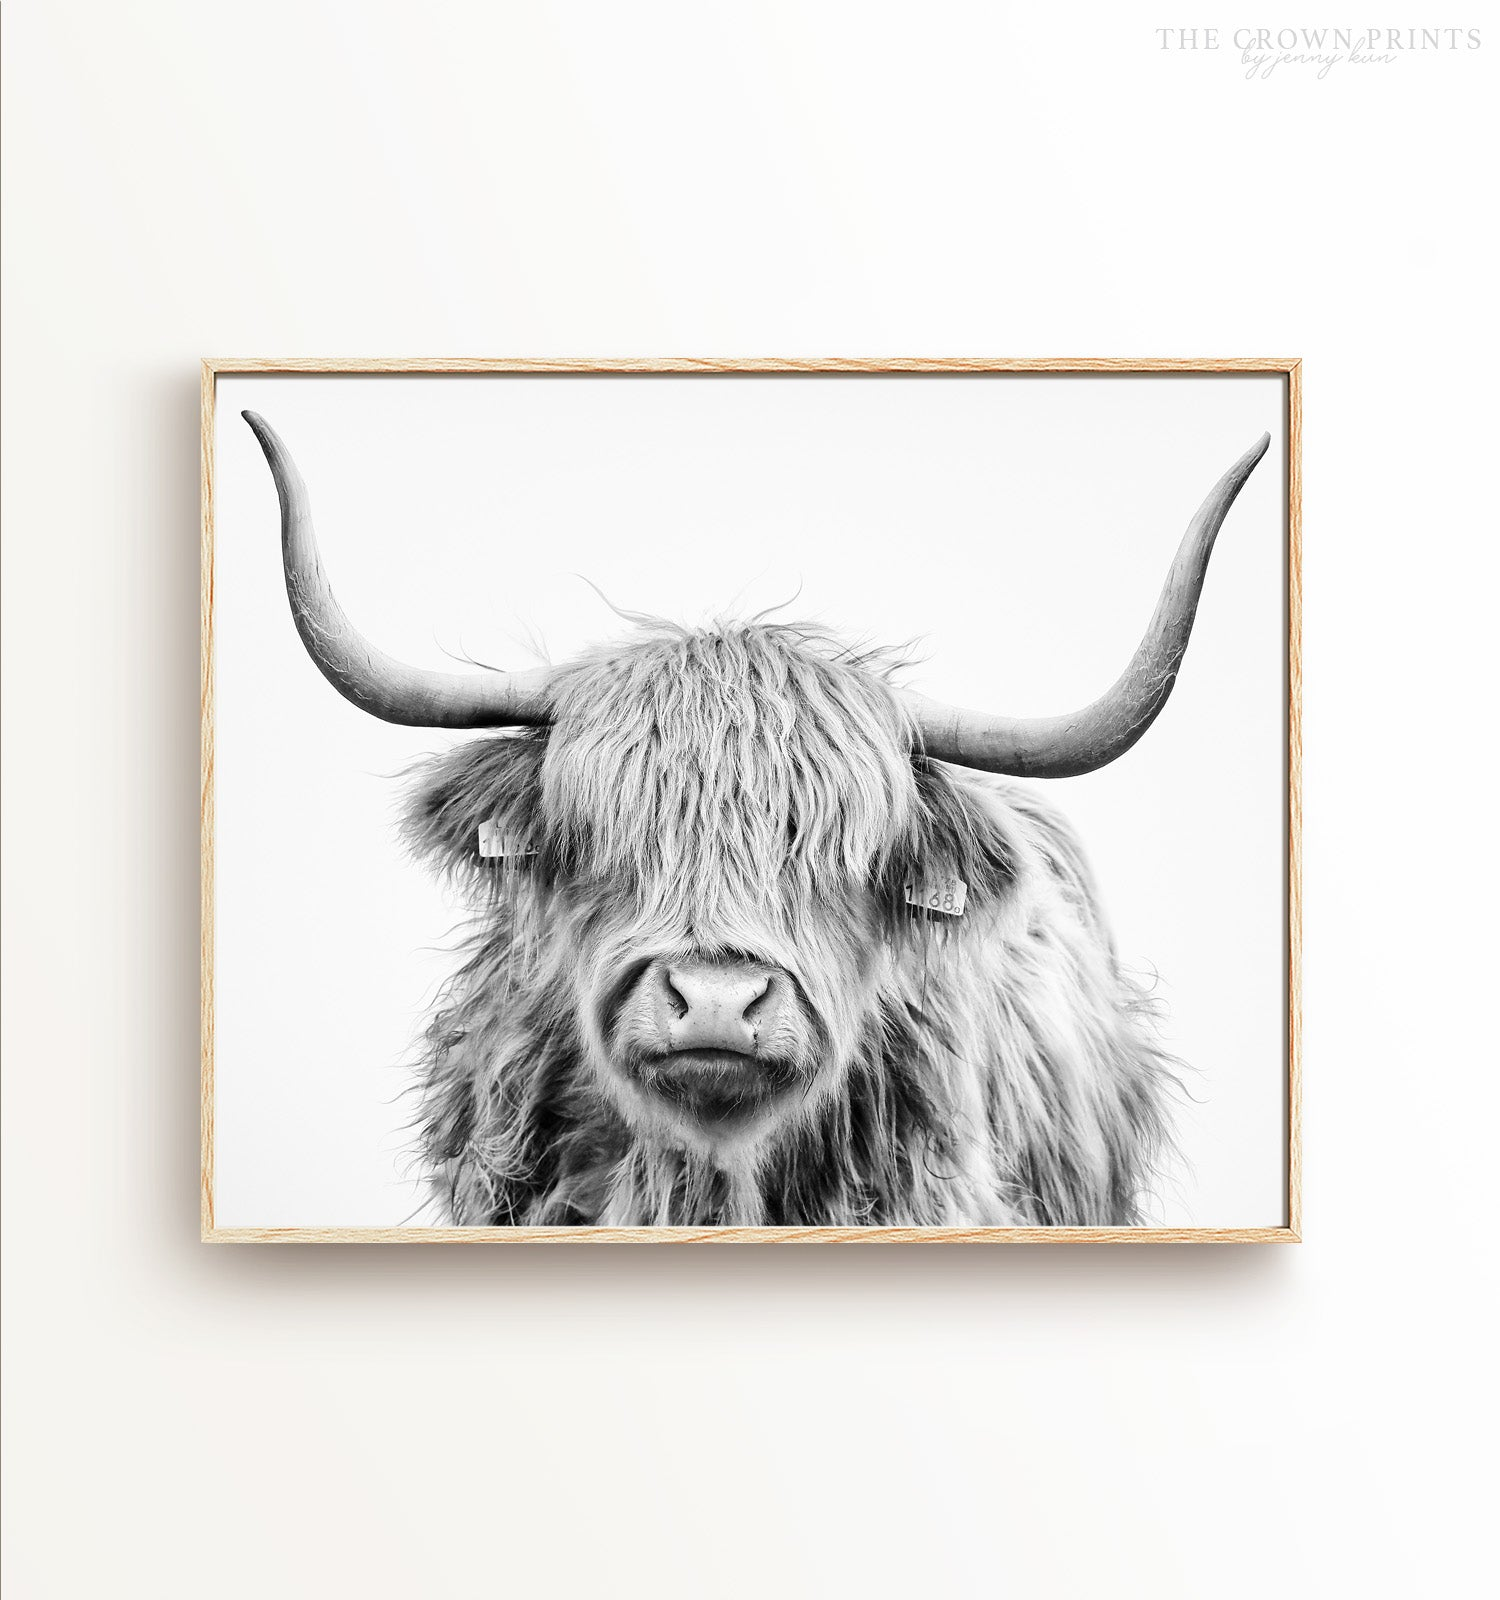 Highland Cow No. 3 Head Shot, Black and White